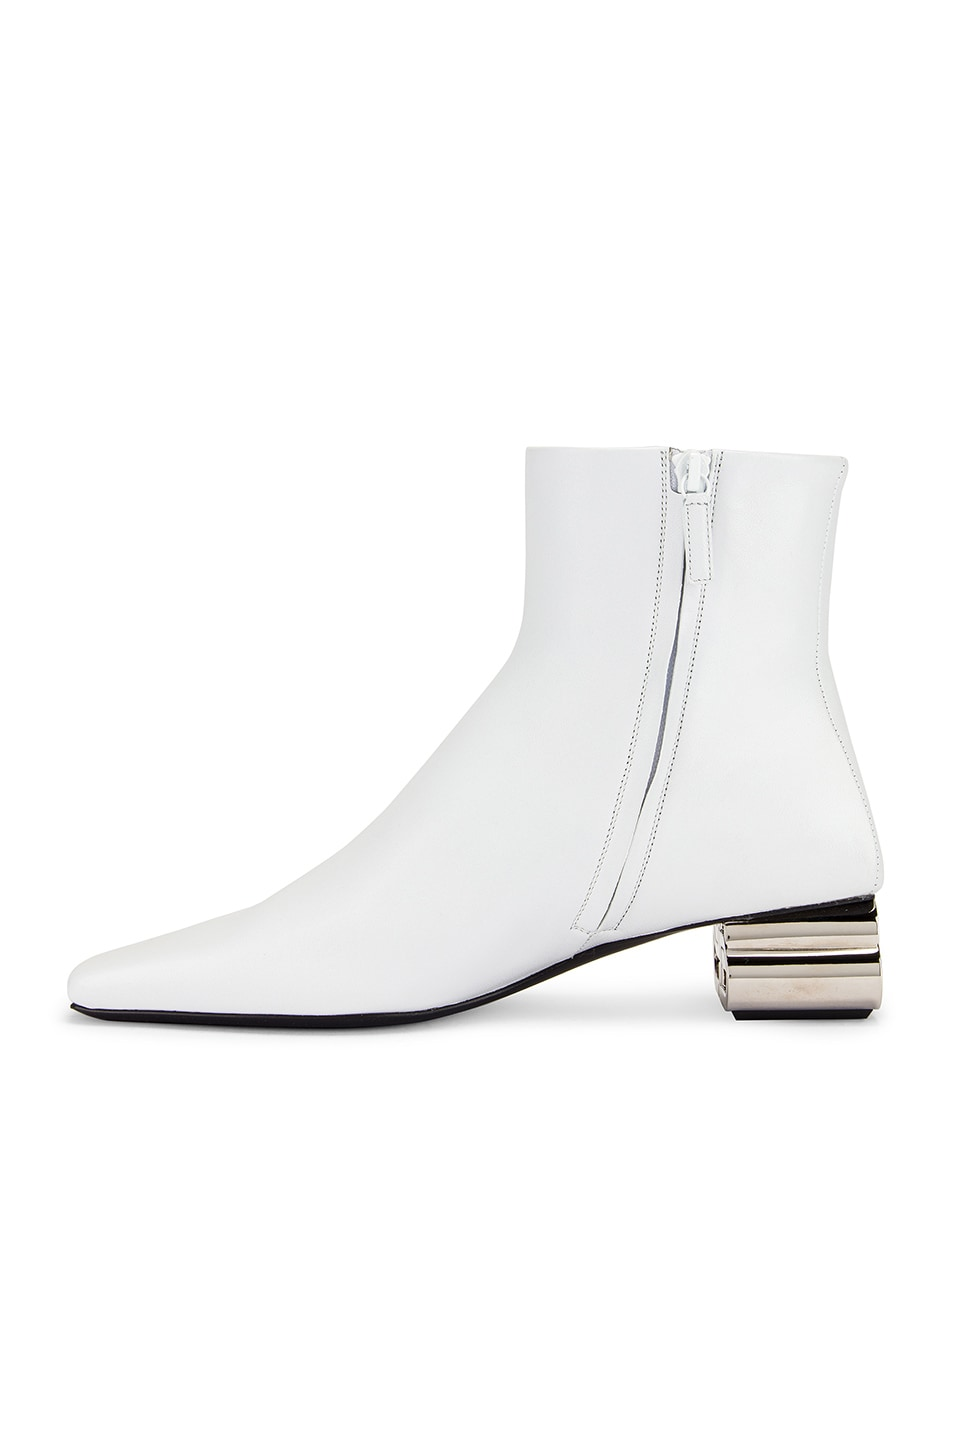 Image 5 of Balenciaga Typo Booties in White & Silver